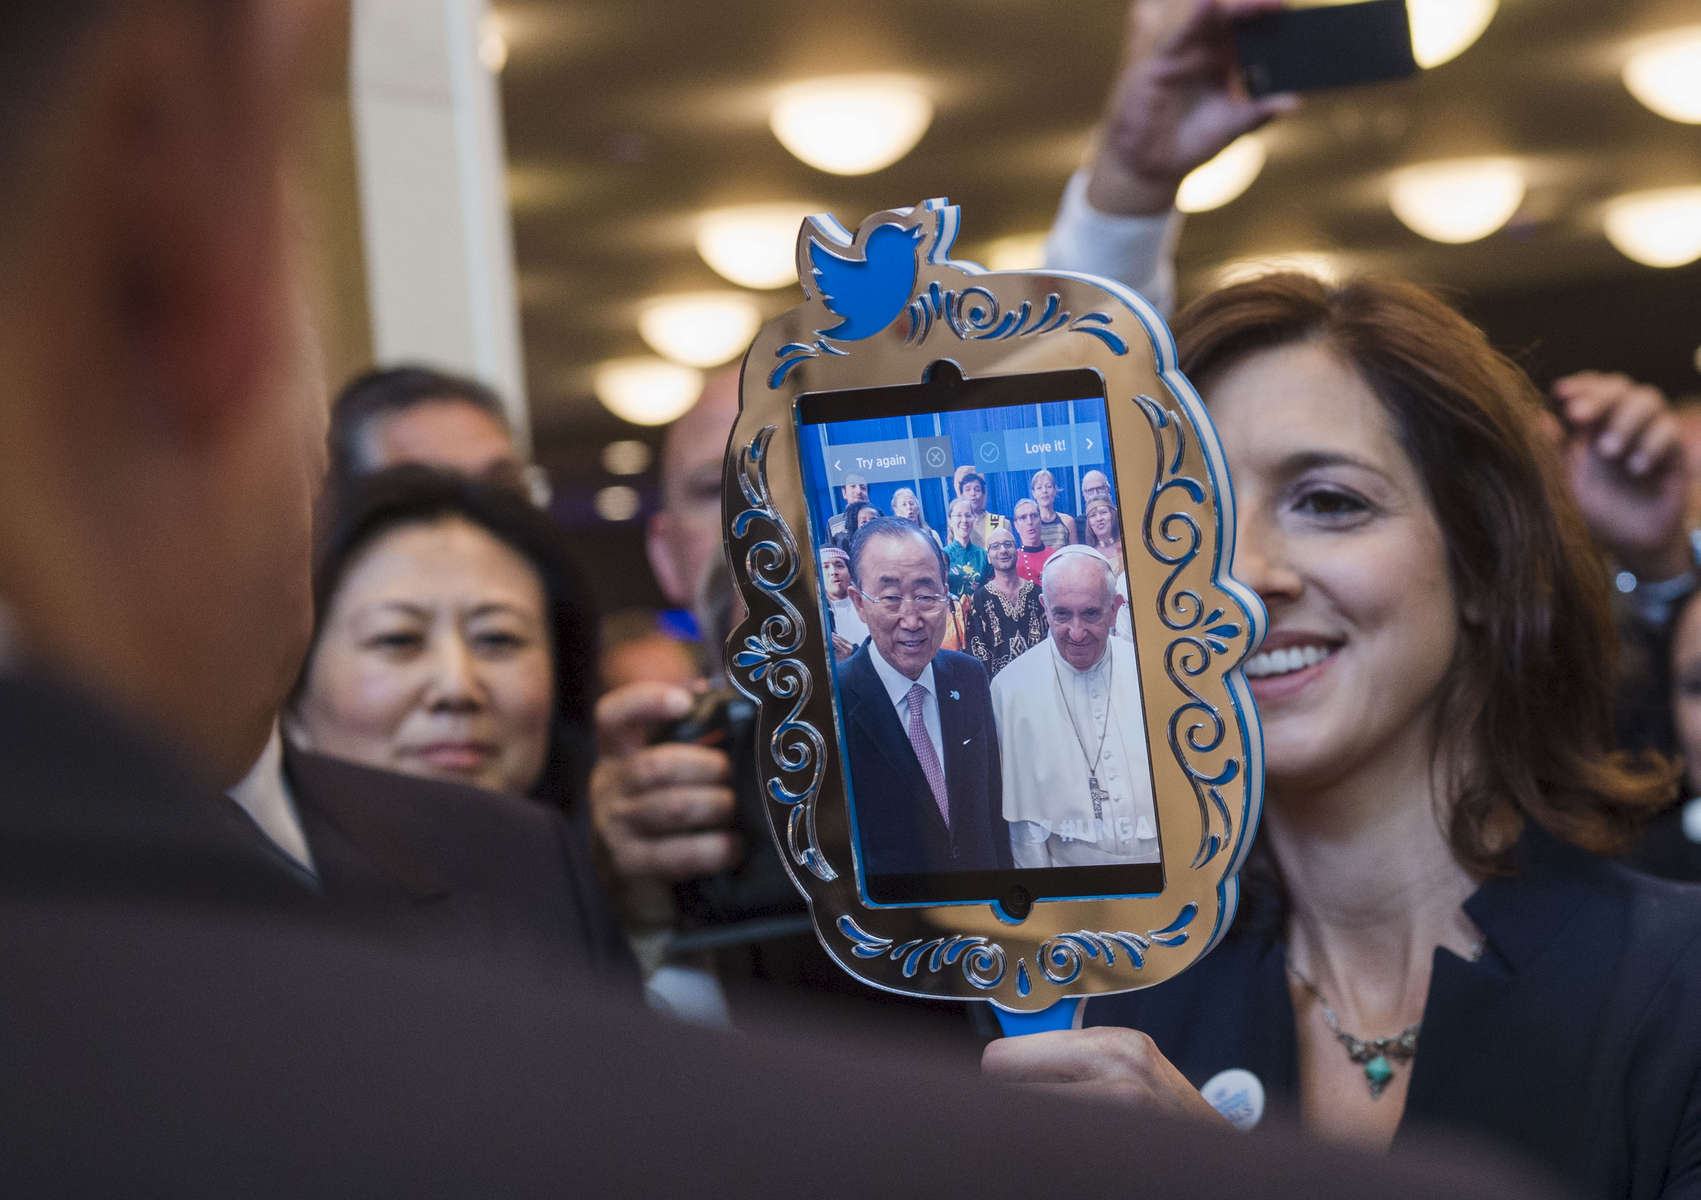 Charlotte Scaddan of the Social Media Team in the UN Department of Public Information (DPI) holds up a Twitter Mirror to Pope Francis and Secretary-General Ban Ki-moon as they stand with the UN Staff Recreation Council Singers performing in the Pope's honour.